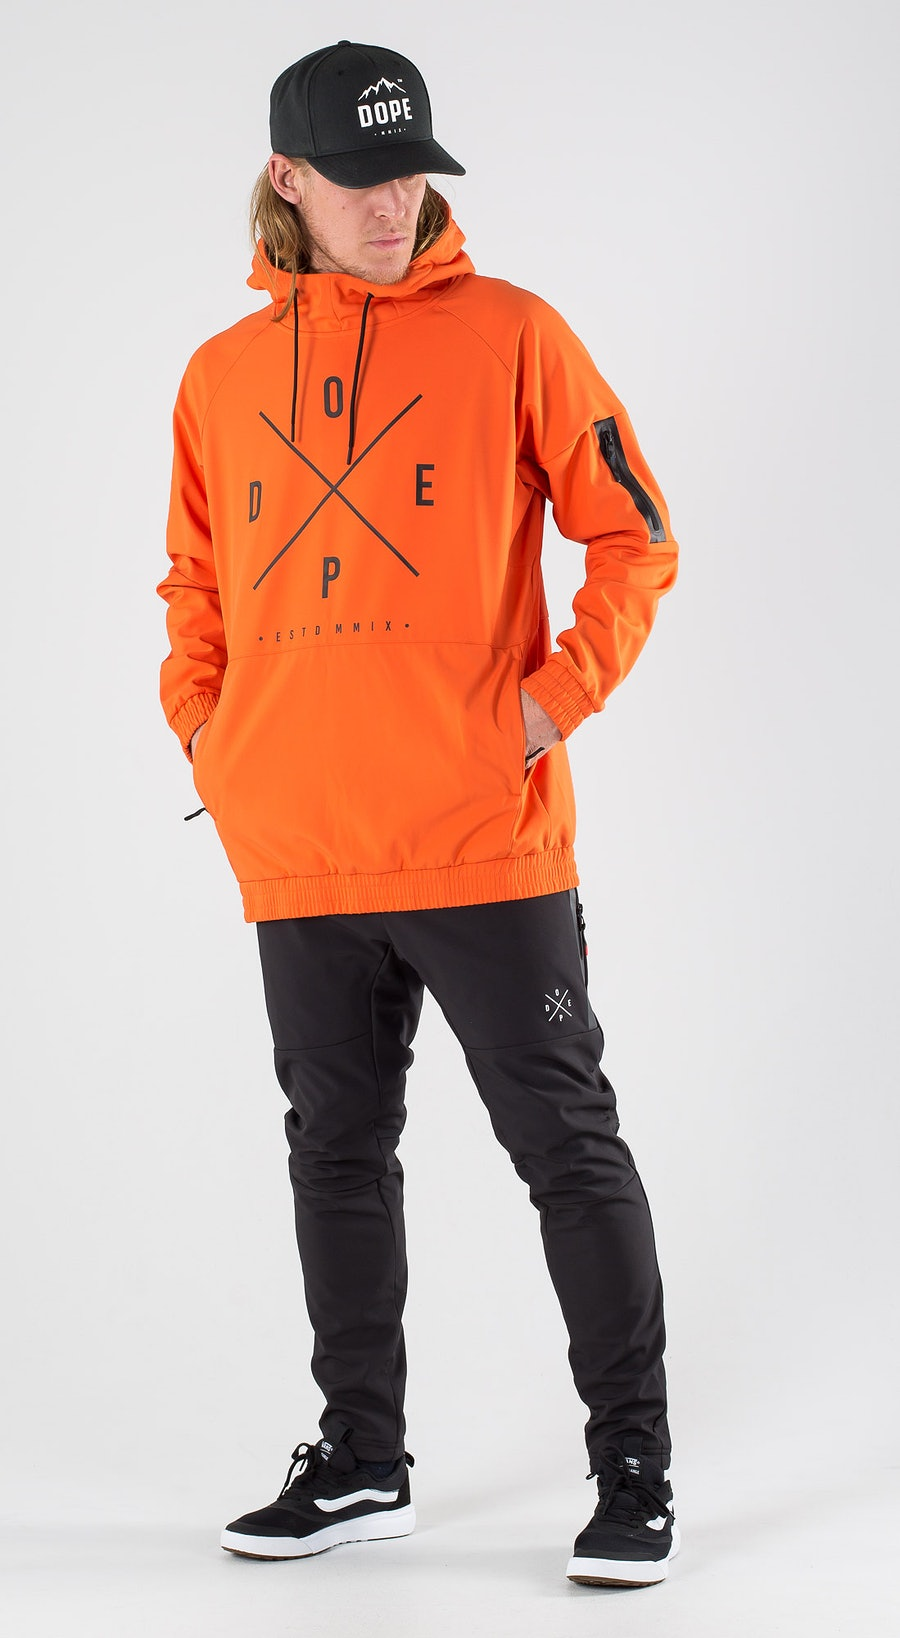 Dope Rambler Orange Outfit Multi